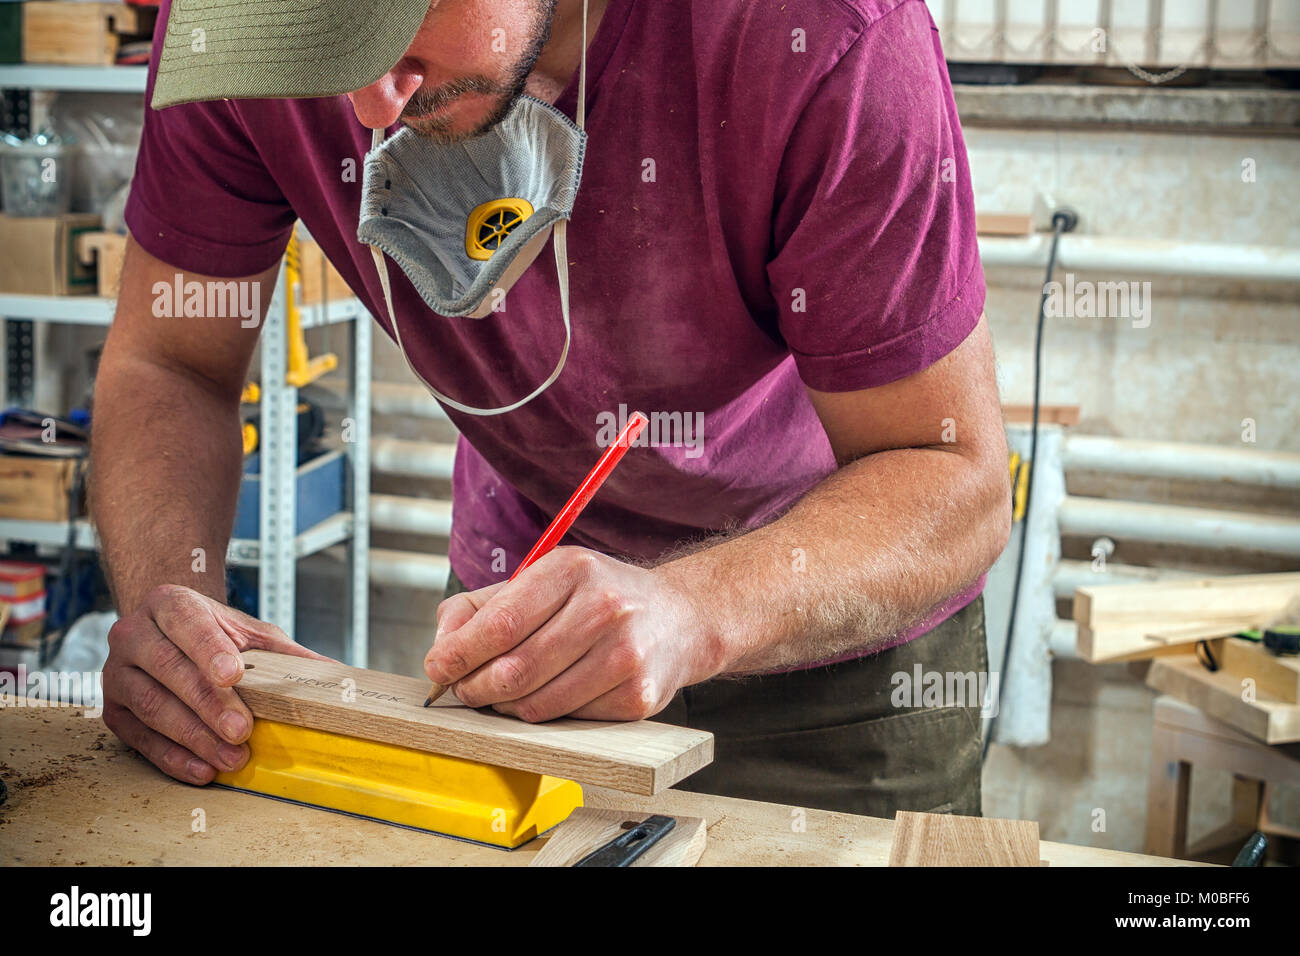 A young strong man builder carpenter works with a wooden bar for making furniture, measures and cuts in the workshop, - Stock Image